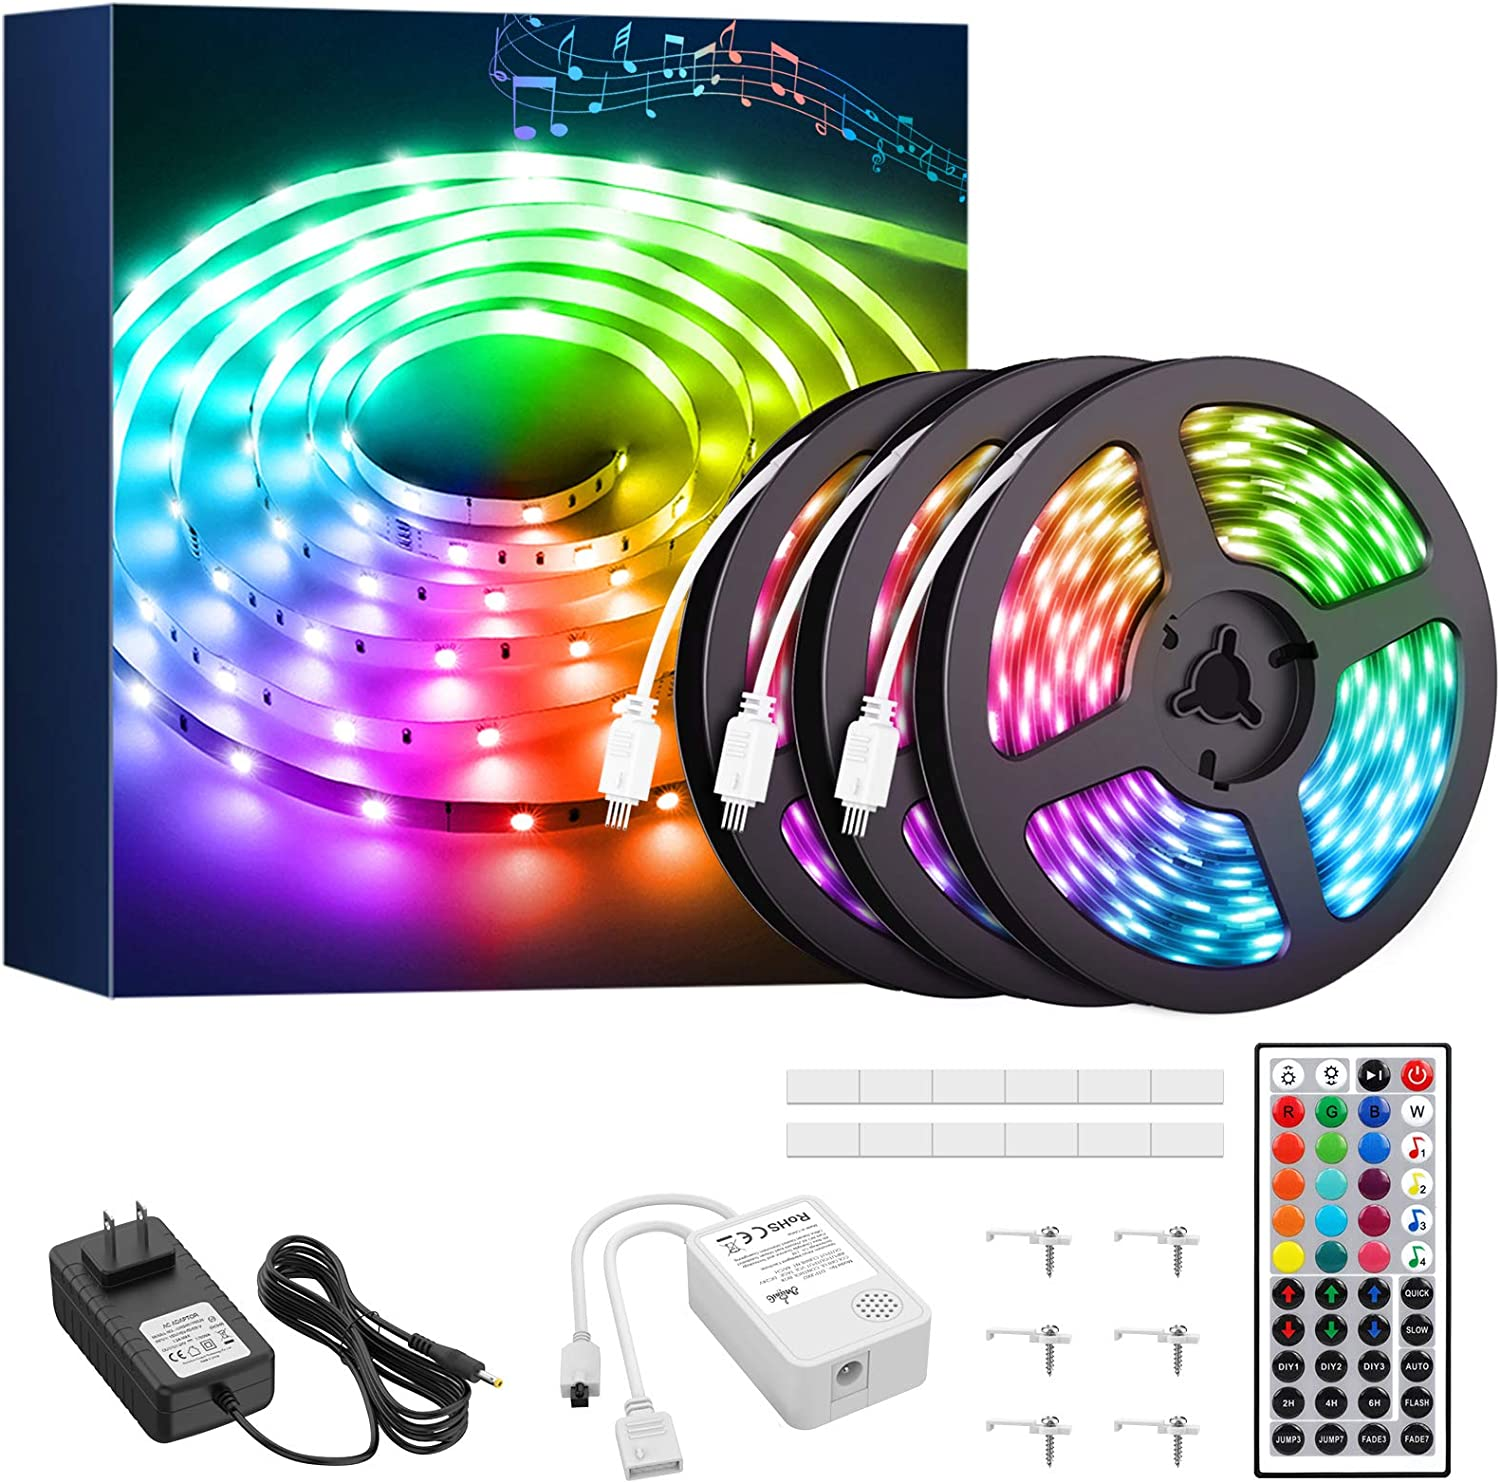 Onforu 50ft RGB LED Strip Lights, Music Synchronized Light Strip with 44 Keys Remote, Color Changing Room Lights with Timing, 5050 RGB Tape Light, DIY Multicolor Rope Light for Bedroom, TV, Party, Bar